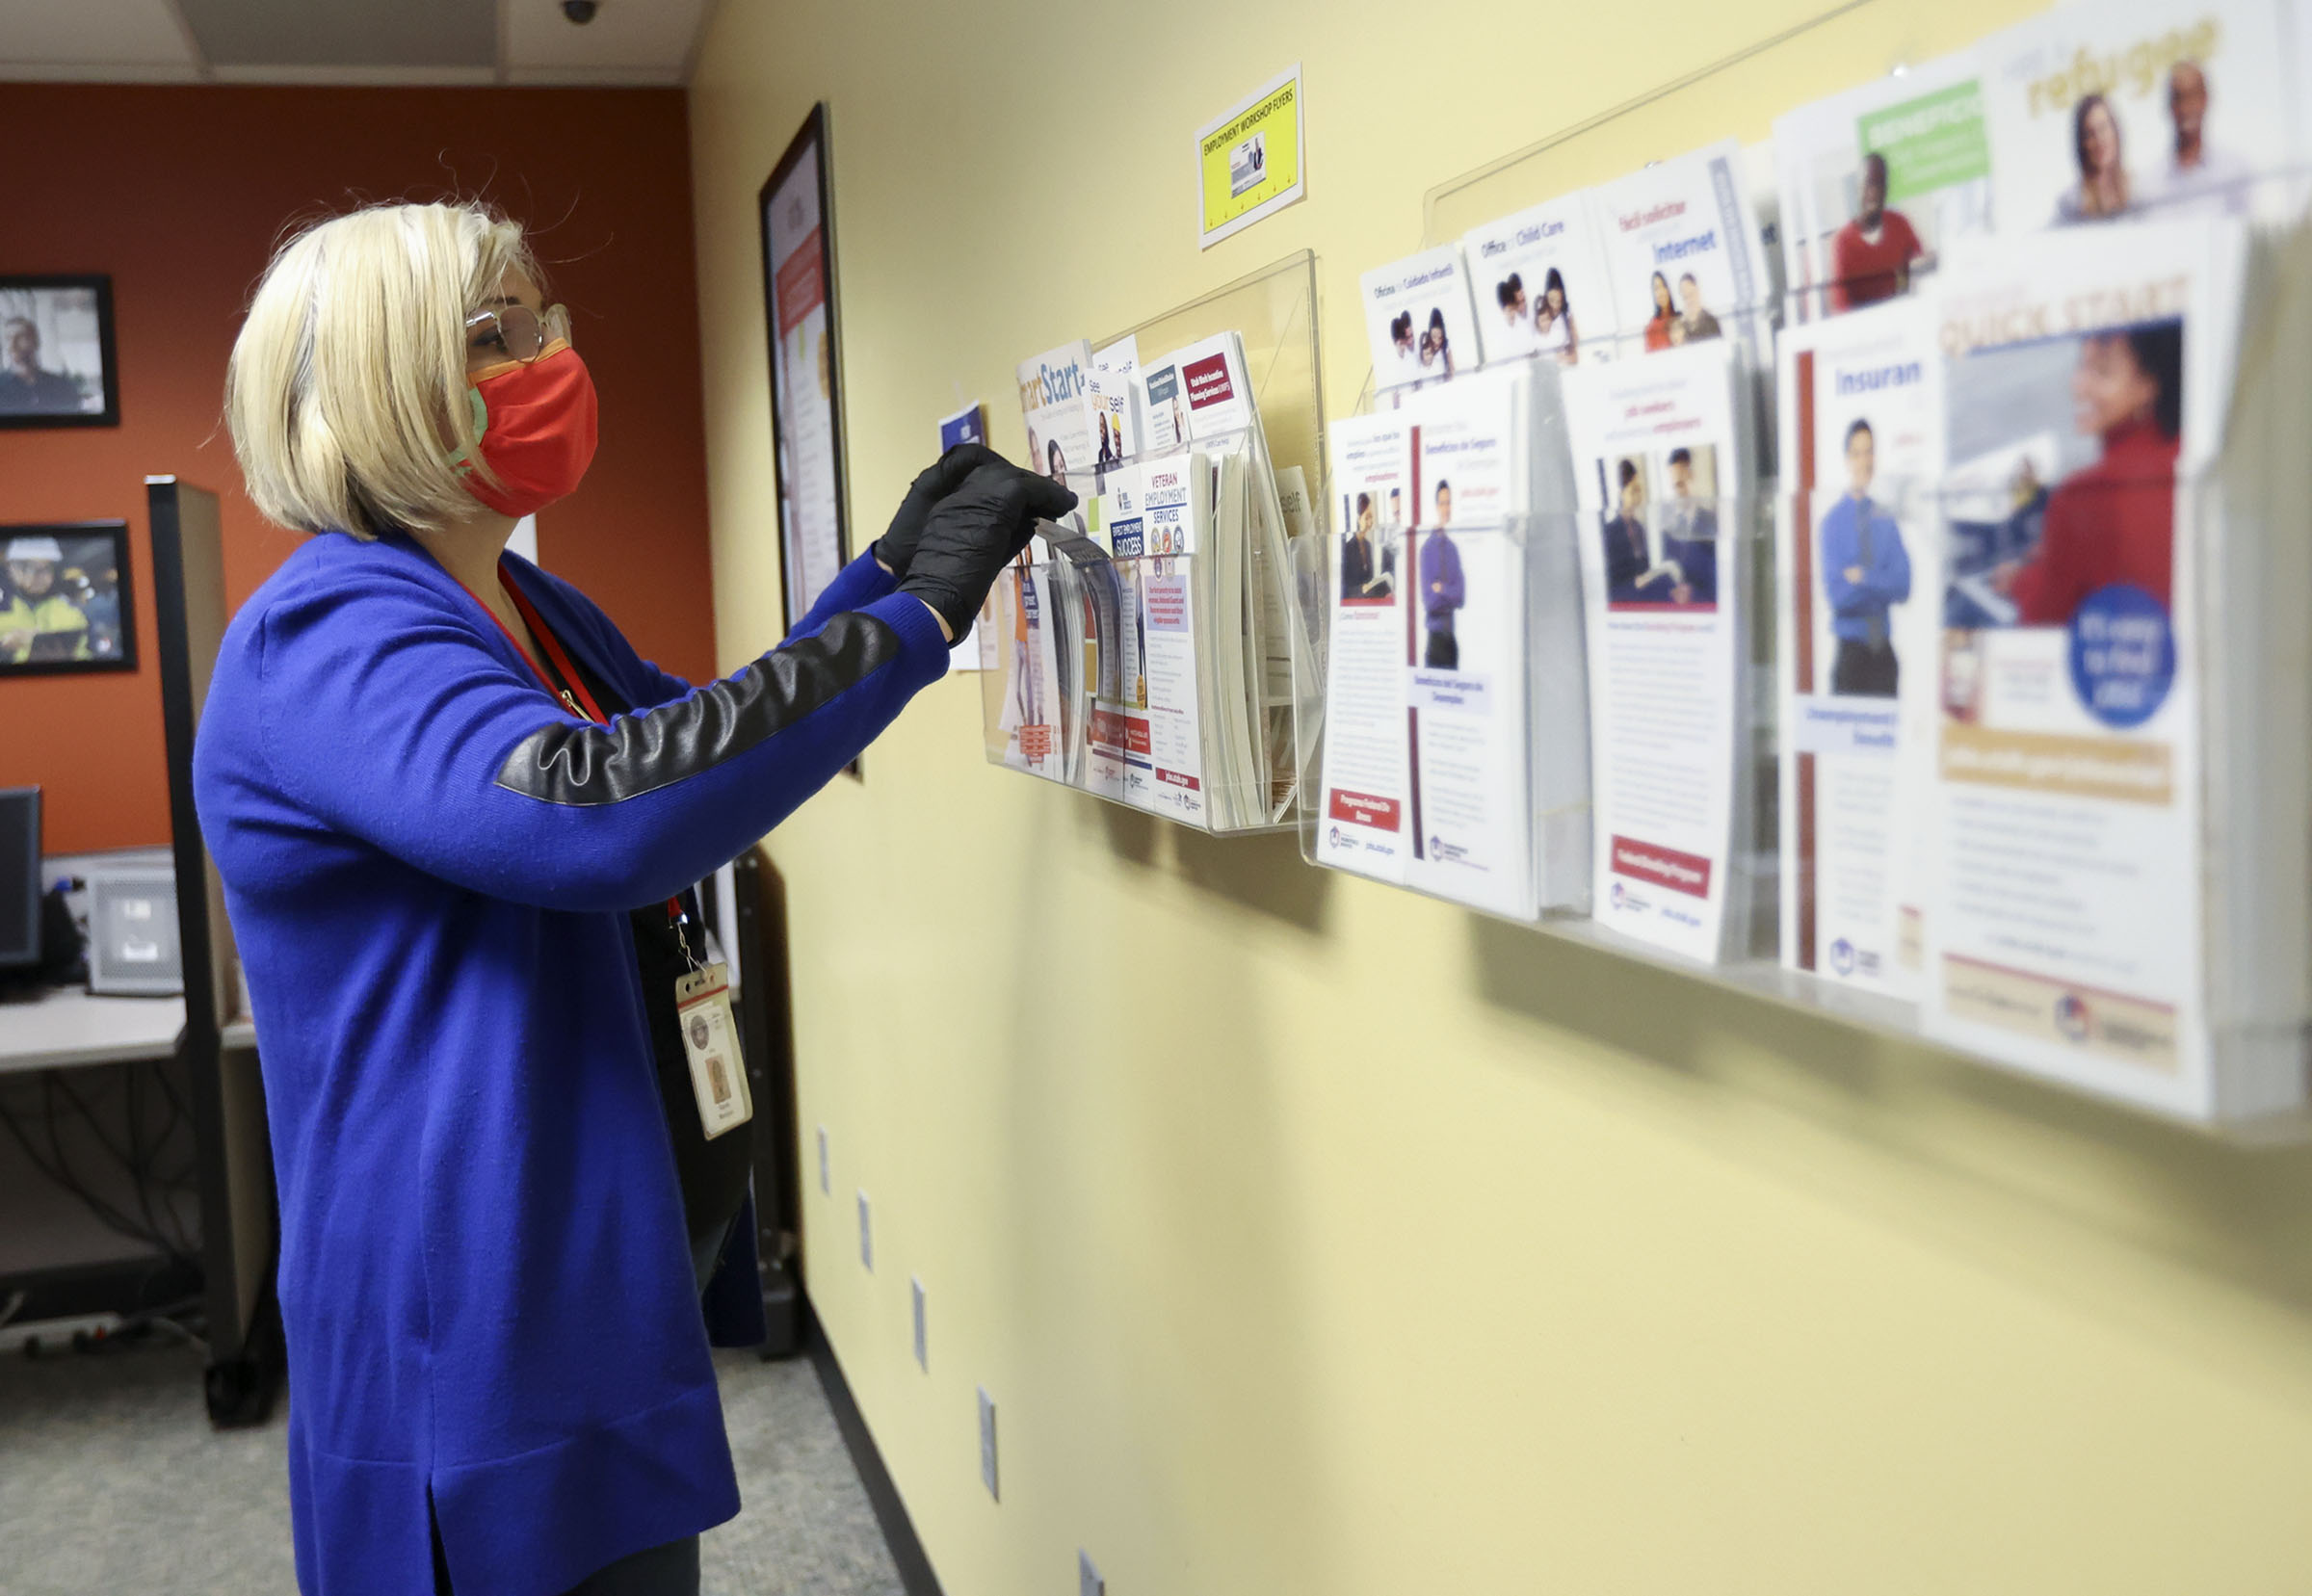 Gayane Manukyan, Department of Workforce Services employment counselor, looks for an unemployment flyer to give a client at the department's office in Salt Lake City.